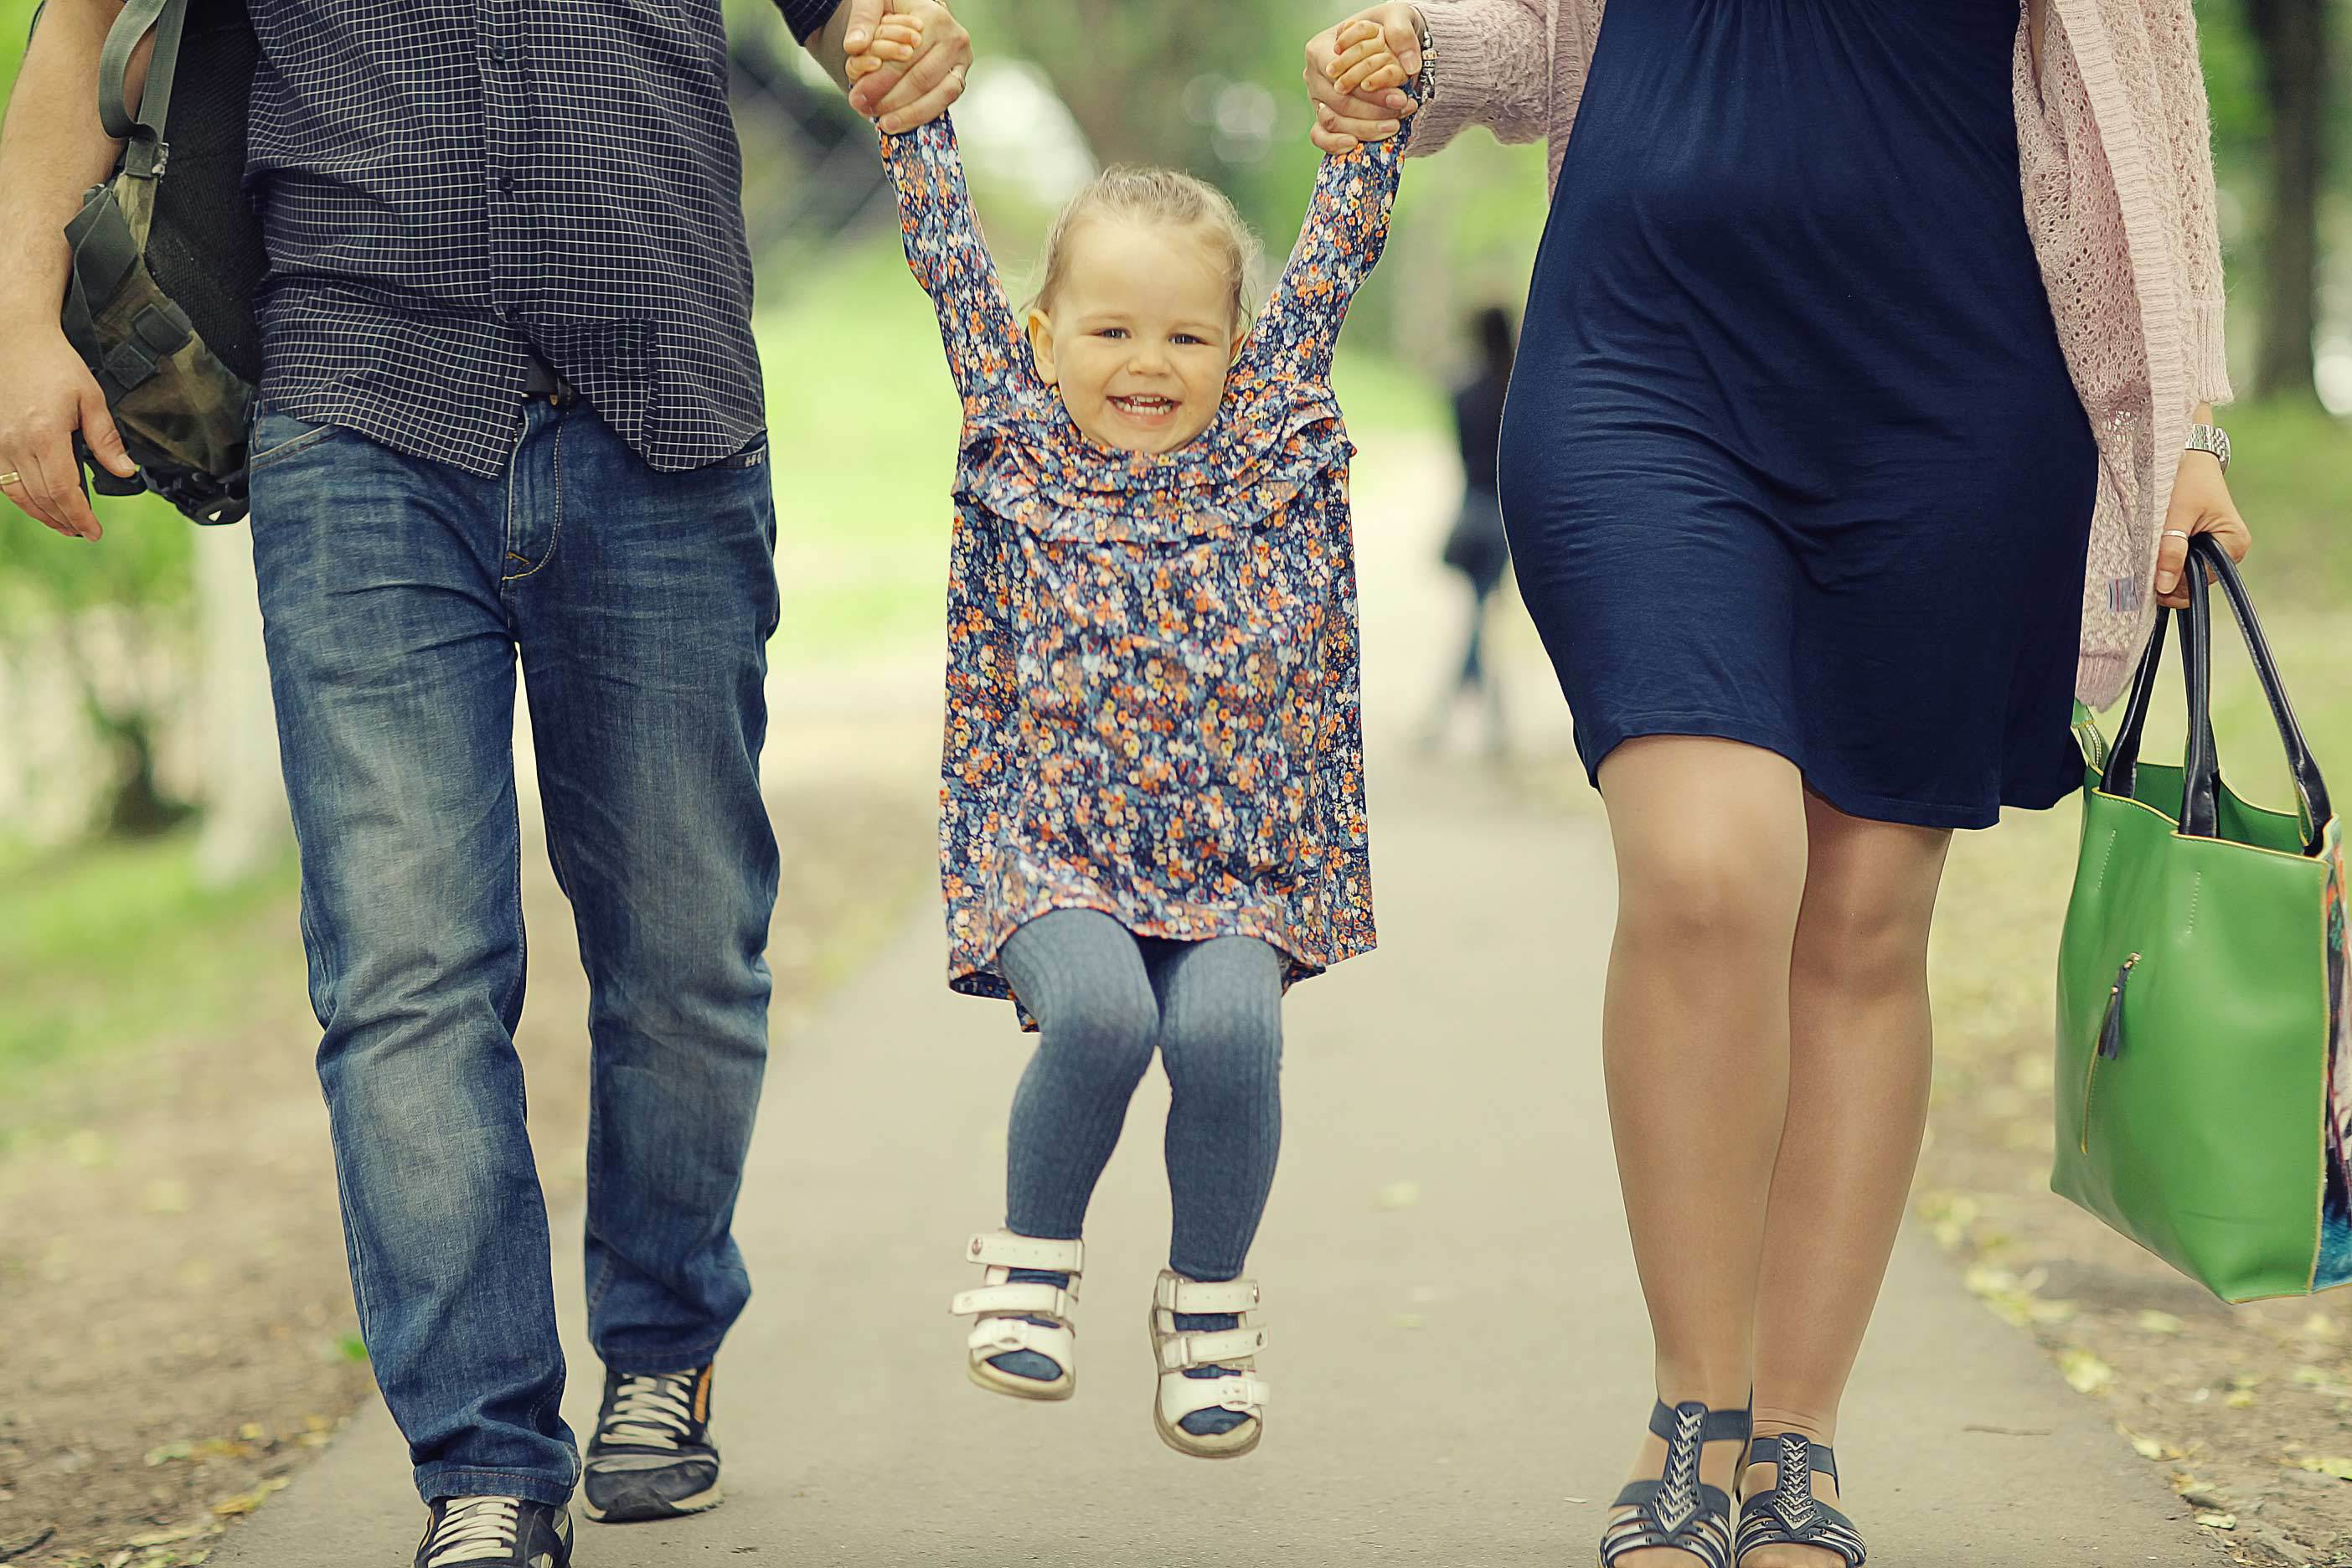 Finding loving homes to place adoptive children